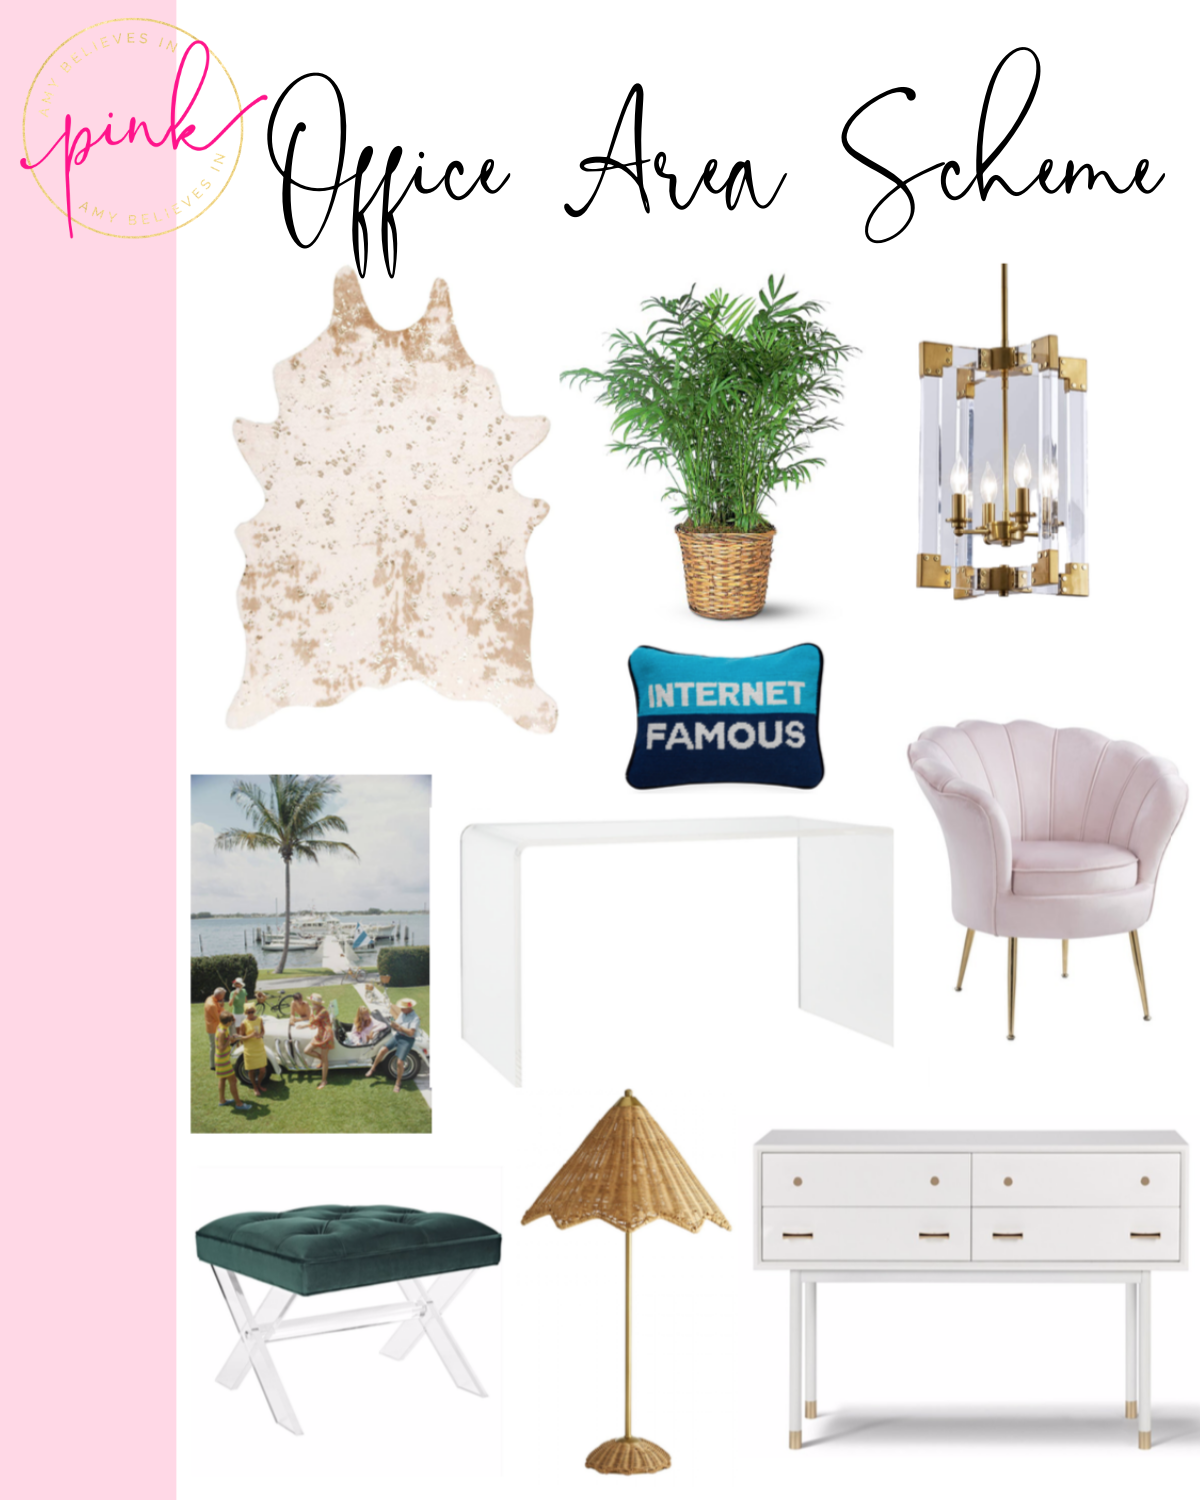 Blush pink, acrylic, and gold office design scheme